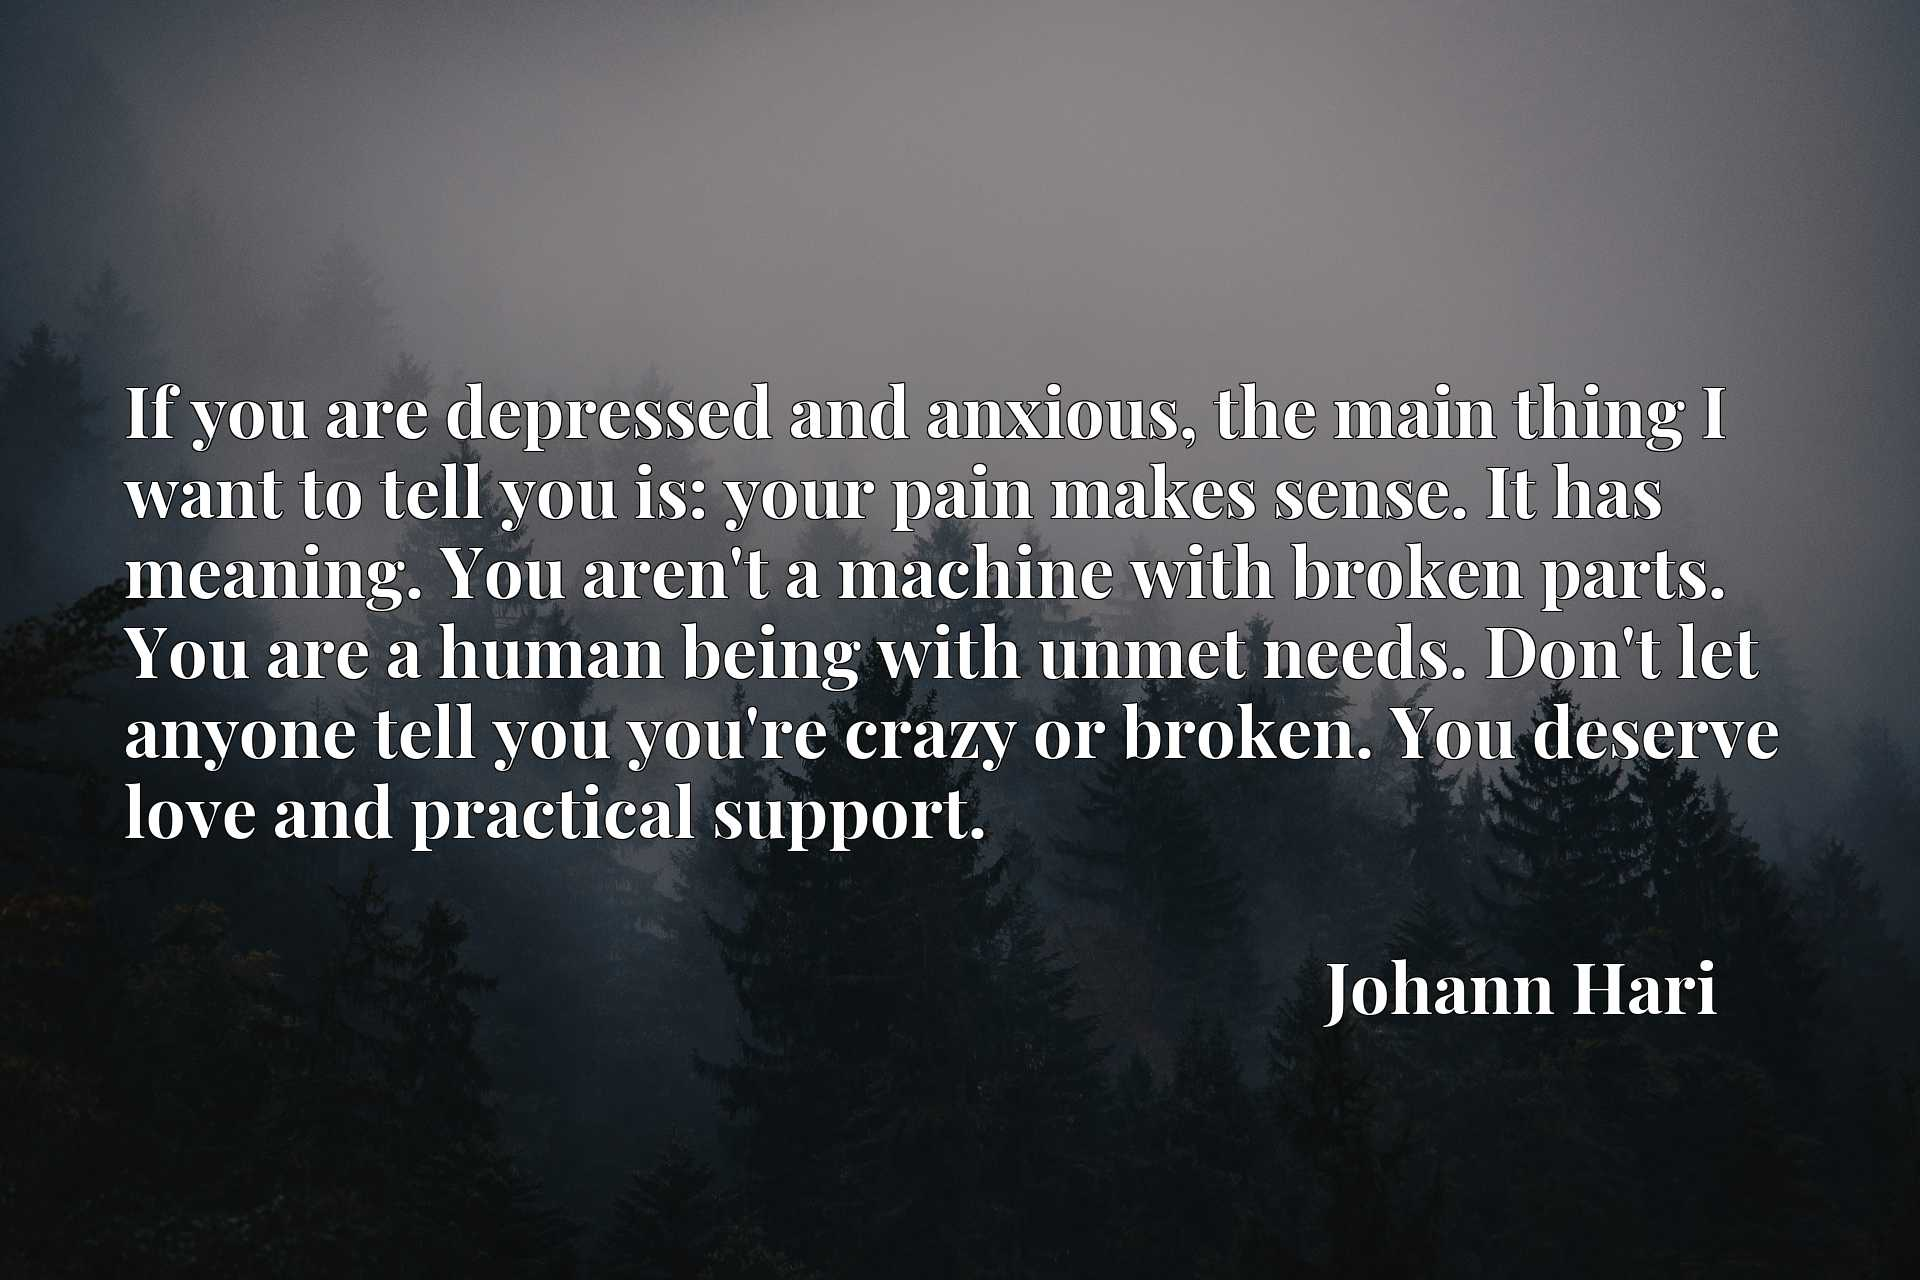 If you are depressed and anxious, the main thing I want to tell you is: your pain makes sense. It has meaning. You aren't a machine with broken parts. You are a human being with unmet needs. Don't let anyone tell you you're crazy or broken. You deserve love and practical support.